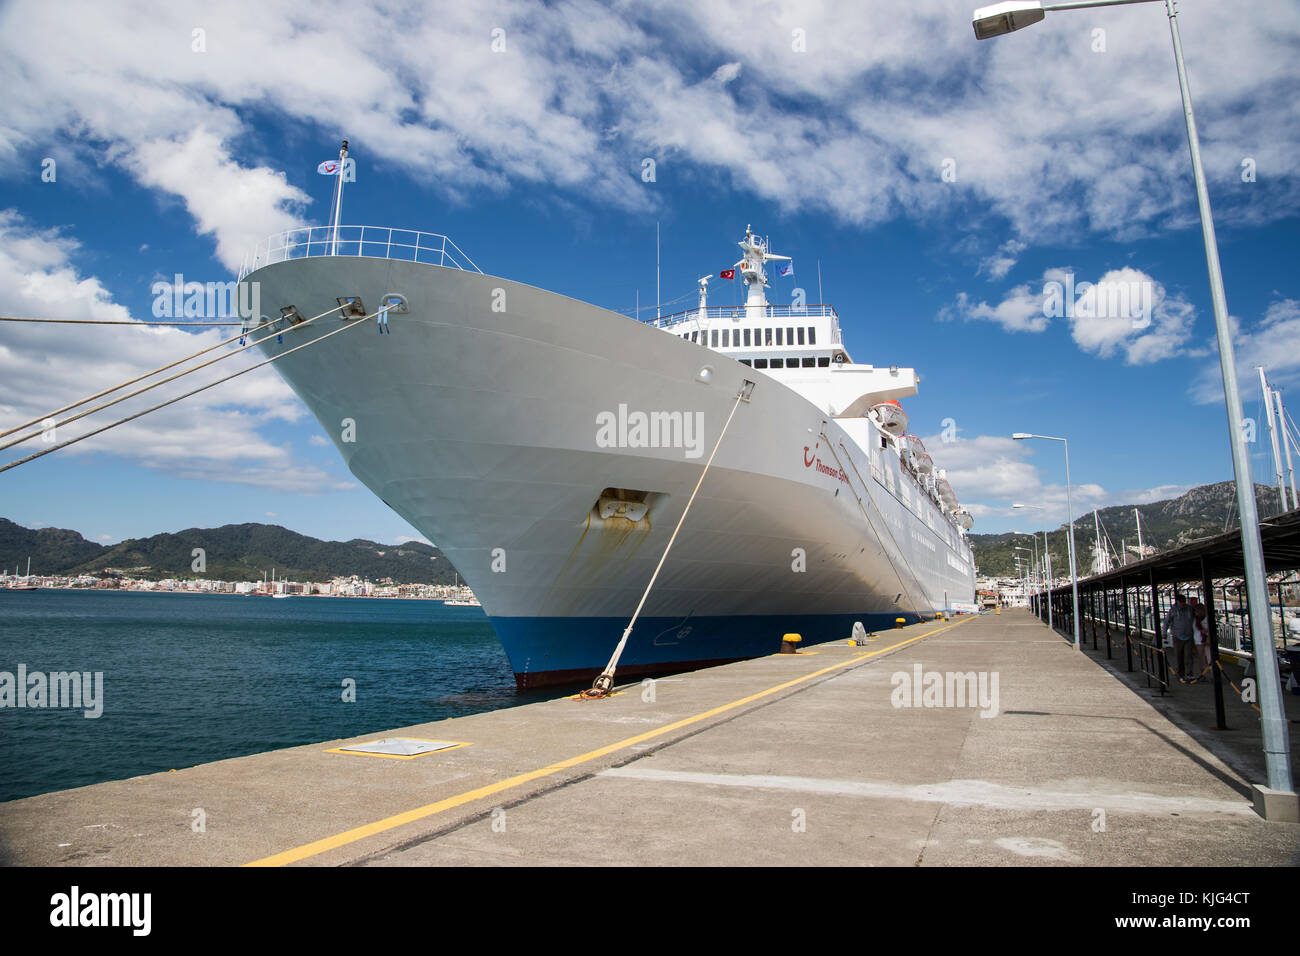 Large passenger cruise liner Thomson Spirit docked at Marmaris port in Turkey and viewed from the jetty alongside - Stock Image